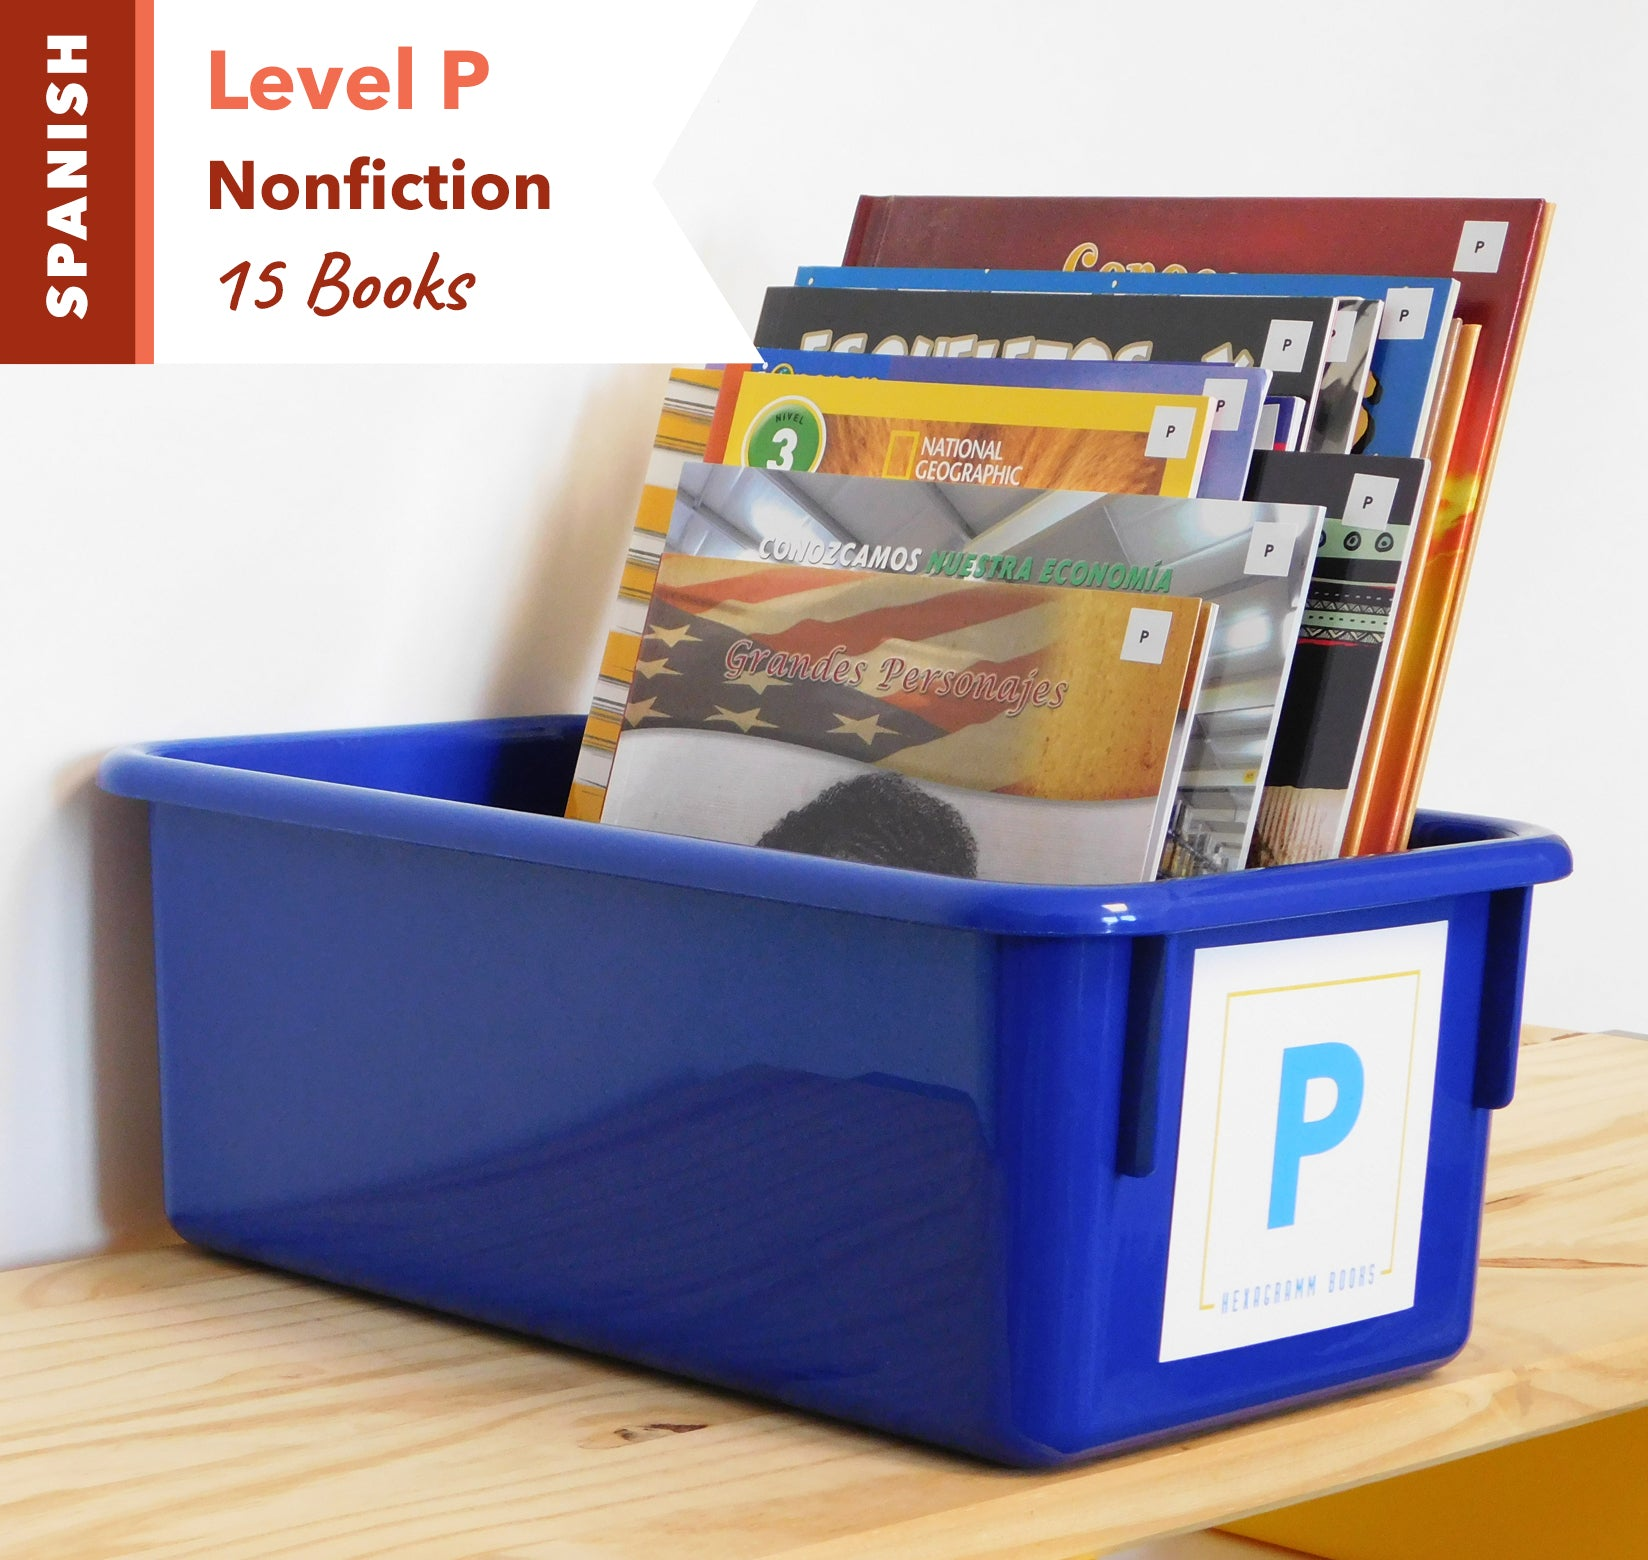 Level P, Bundle of 15 (Nonfiction) Spanish